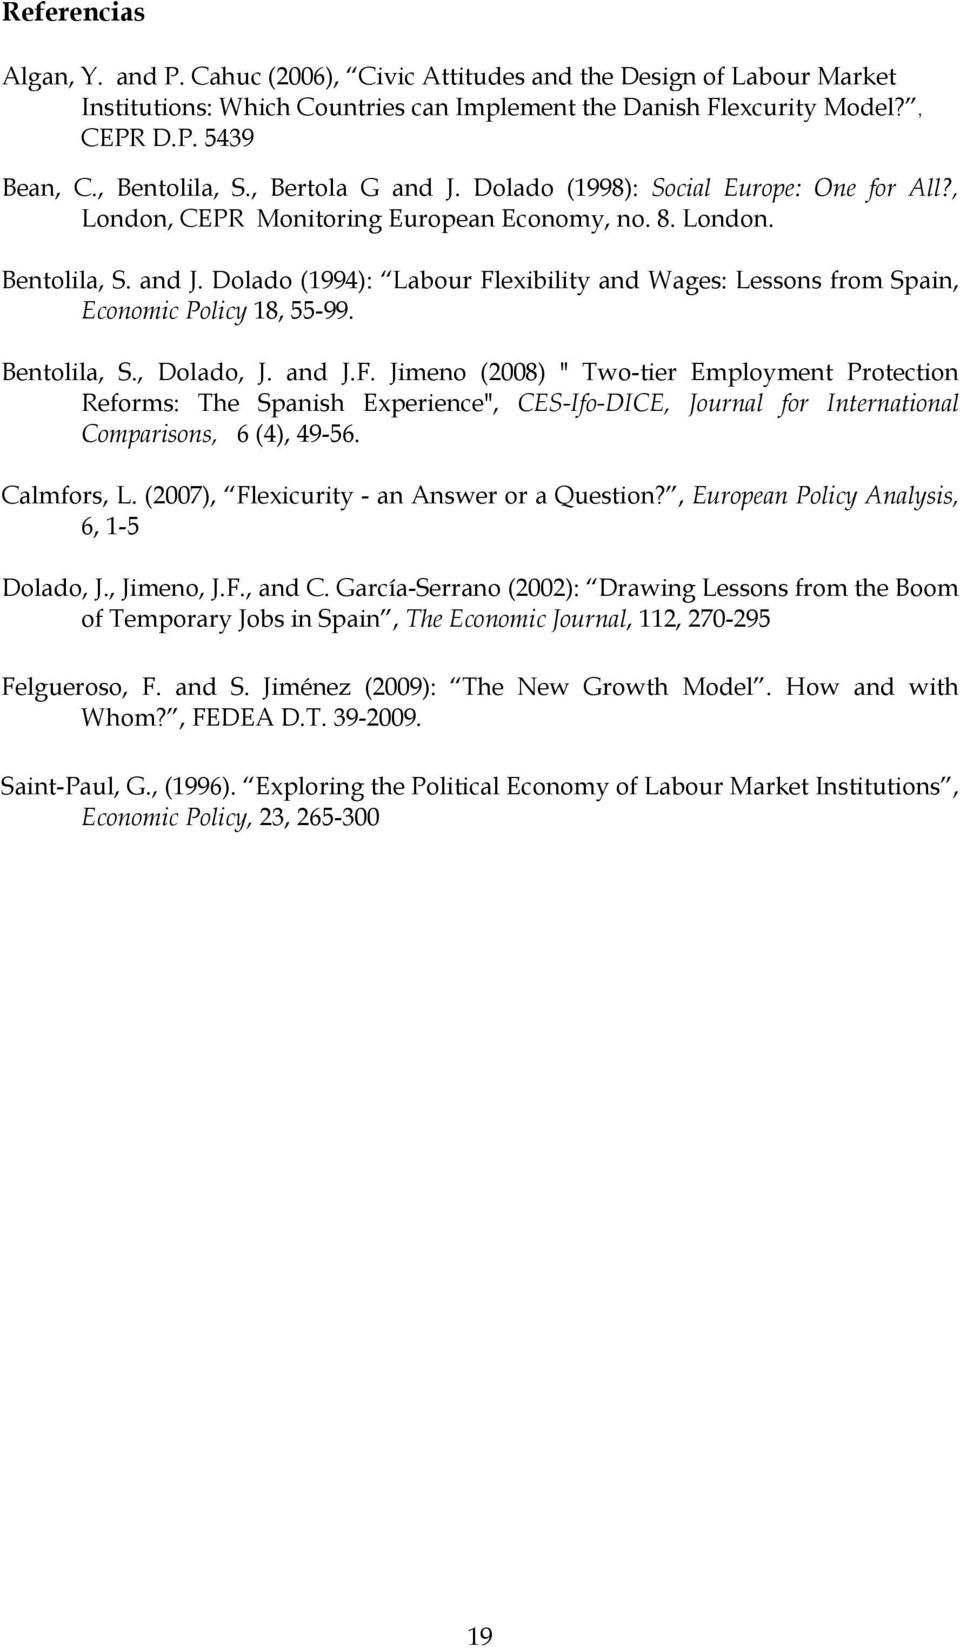 "Bentolila, S., Dolado, J. and J.F. Jimeno (2008) "" Two-tier Employment Protection Reforms: The Spanish Experience"", CES-Ifo-DICE, Journal for International Comparisons, 6 (4), 49-56. Calmfors, L."